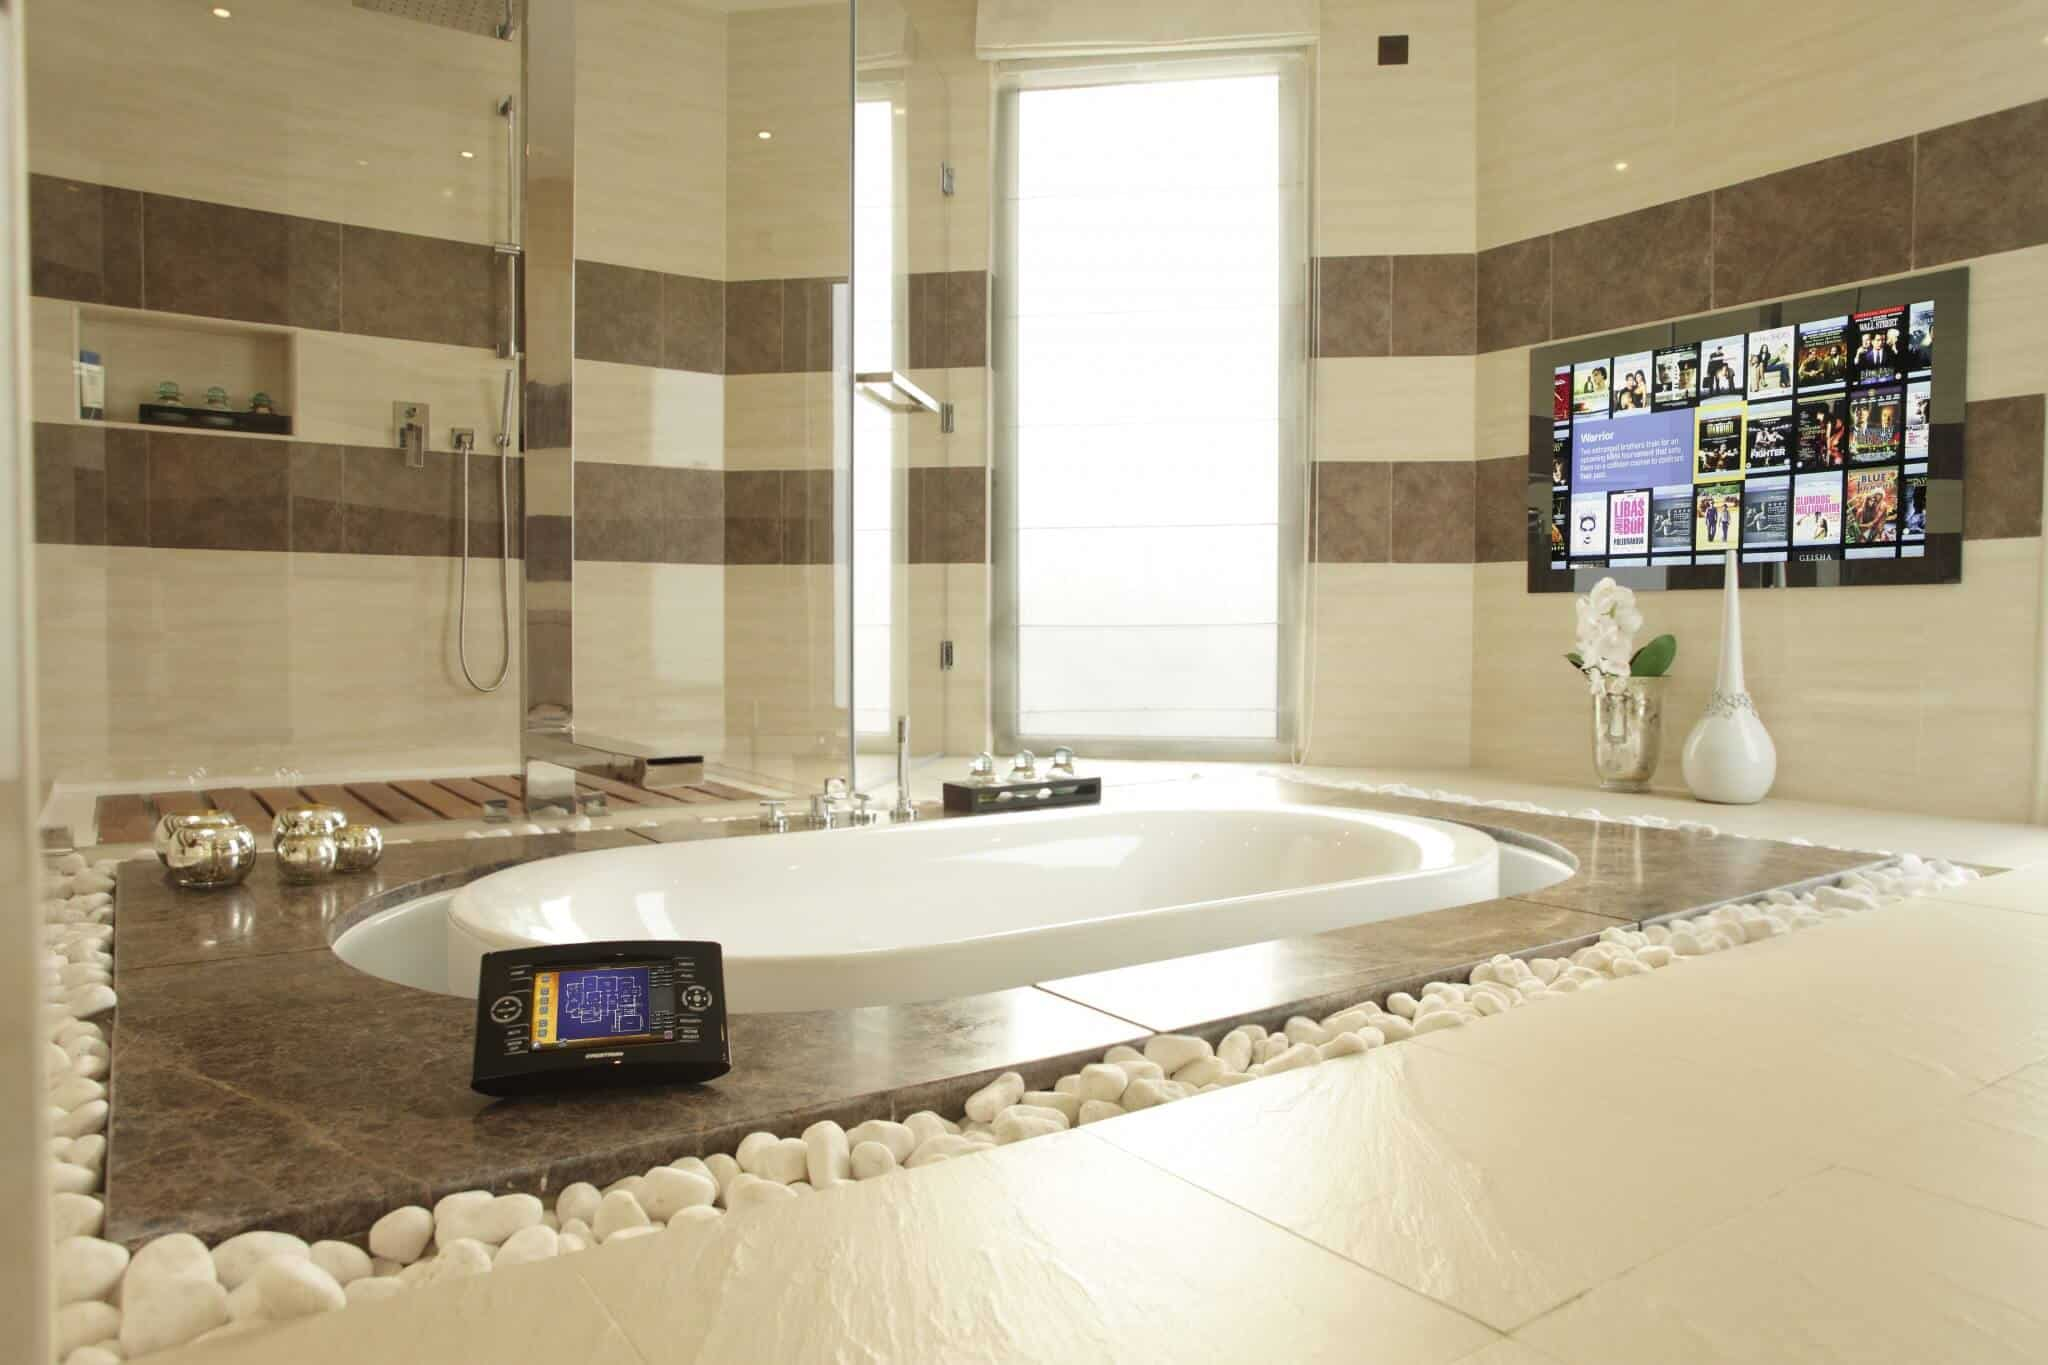 Agath Miror TV in bathroom showing Kaleidescape Movie Server